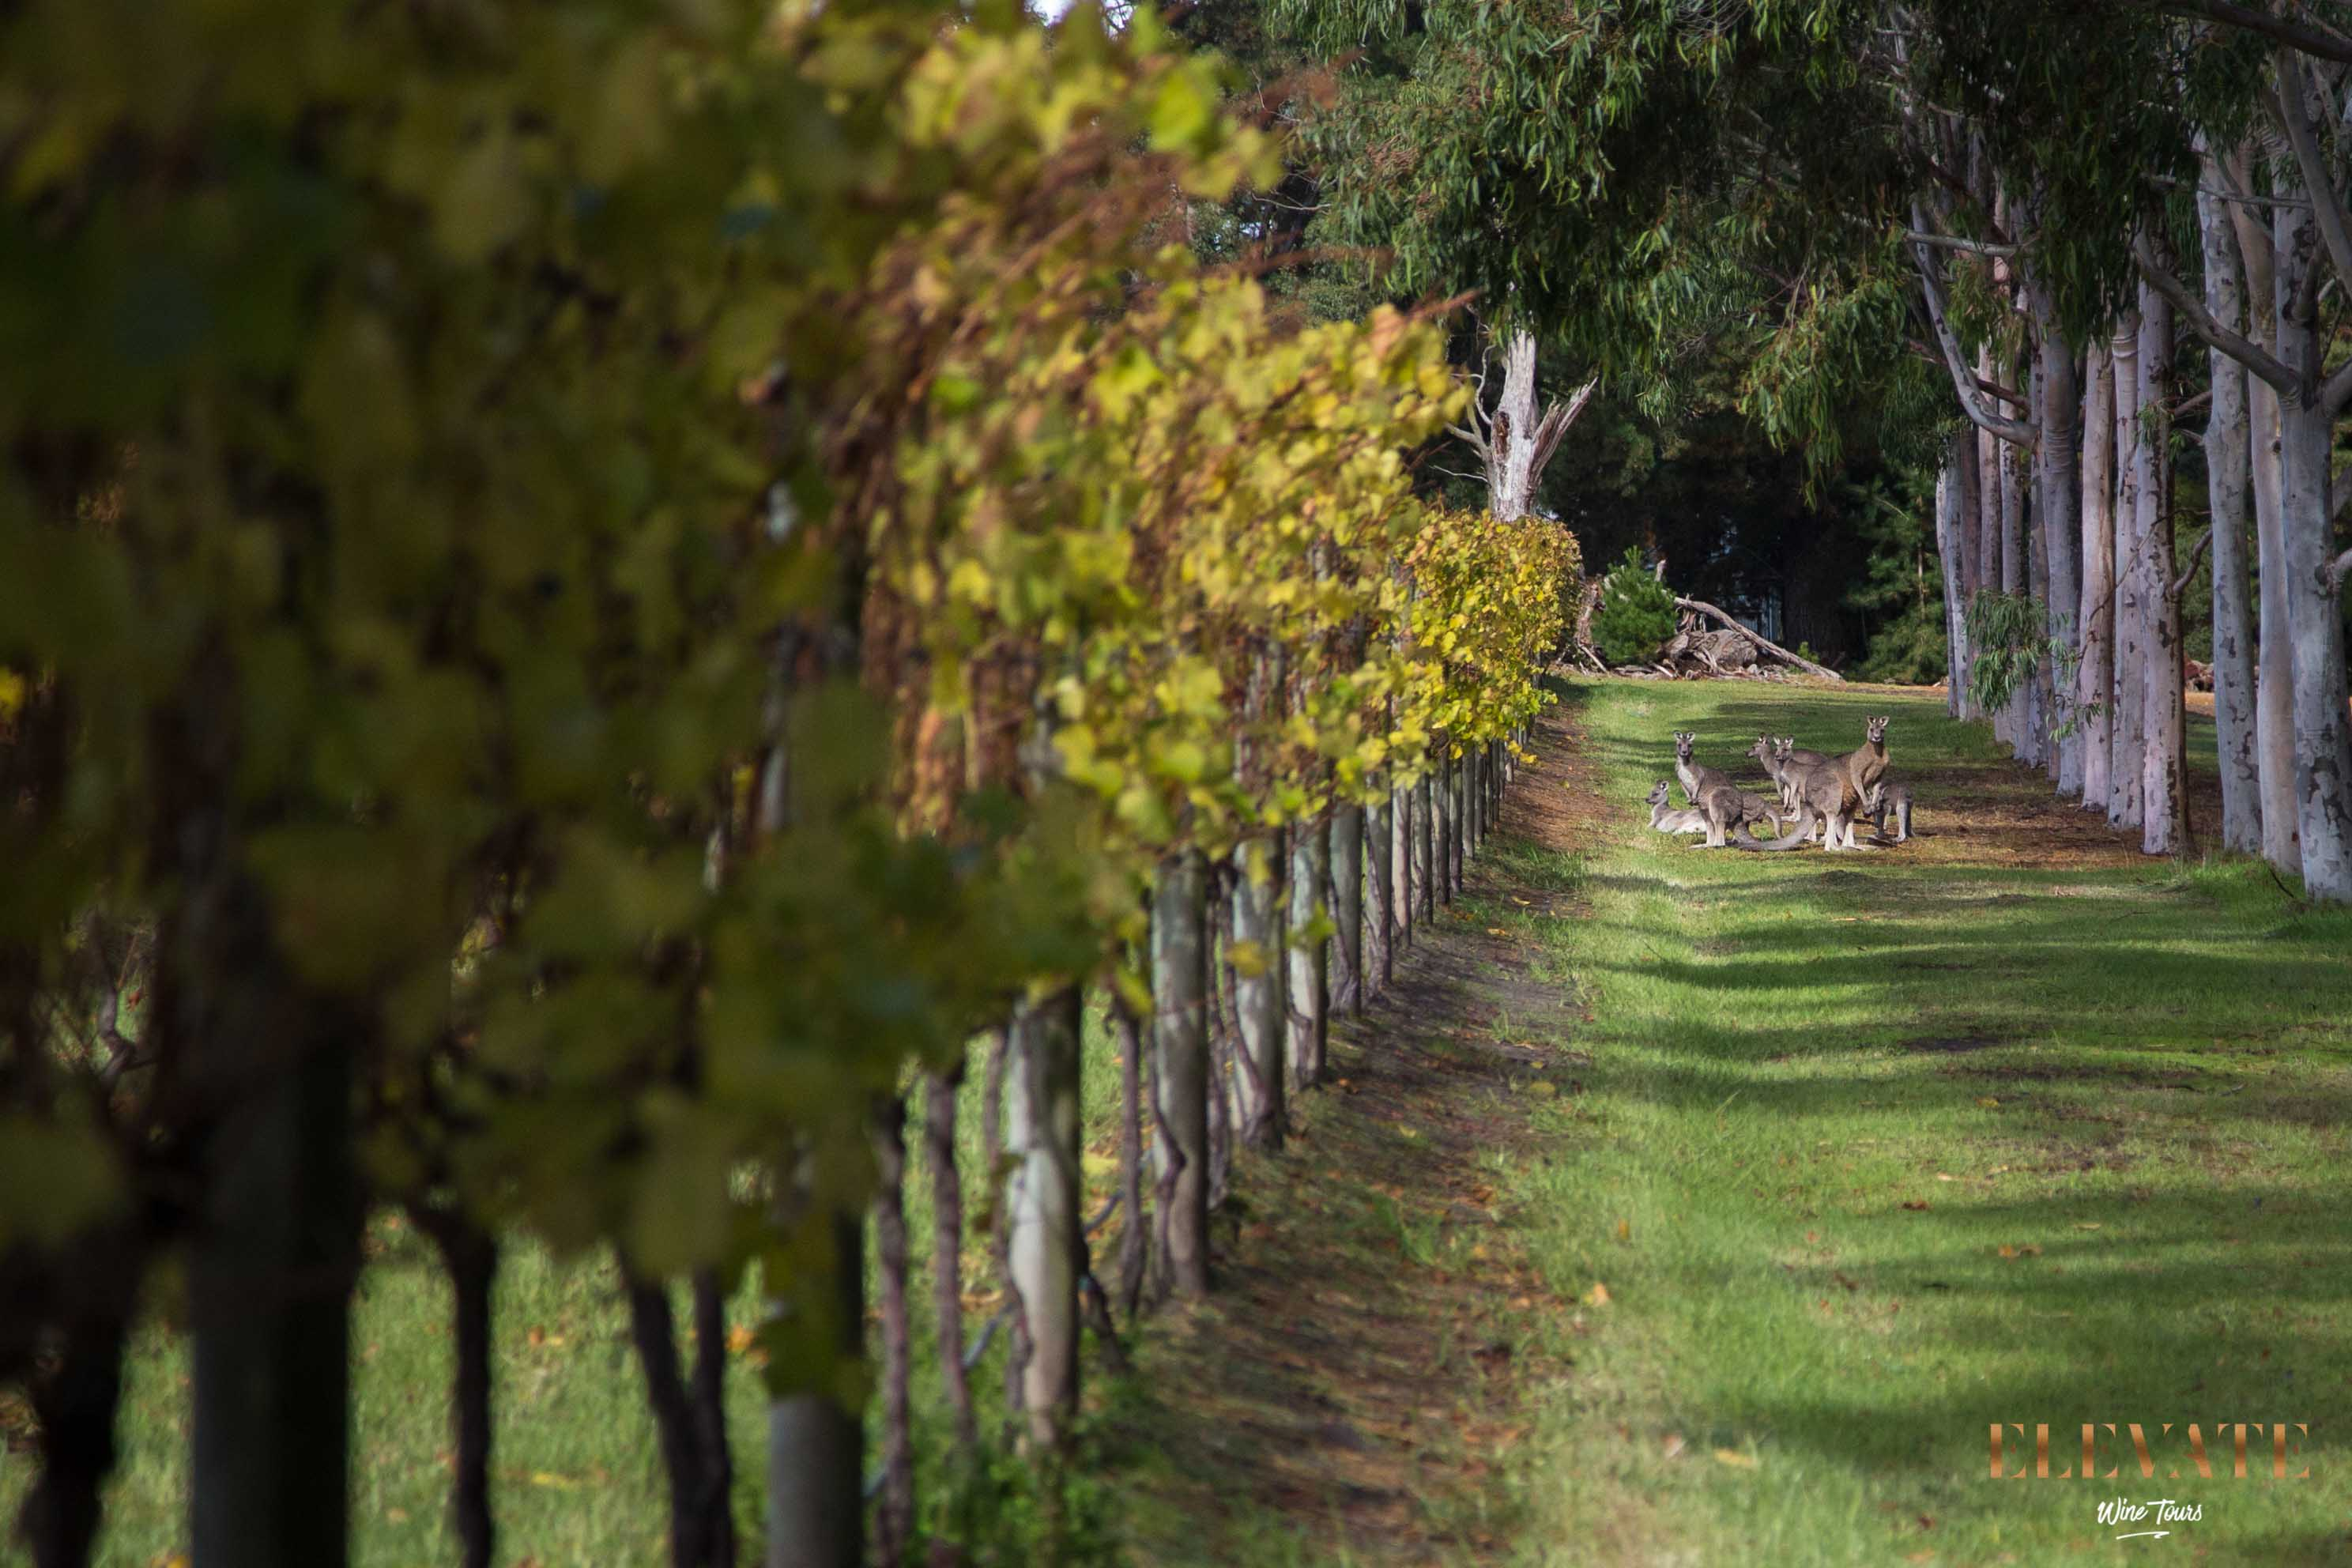 Kangaroos in the vineyard at Yabby Lake, Mornington Peninsula